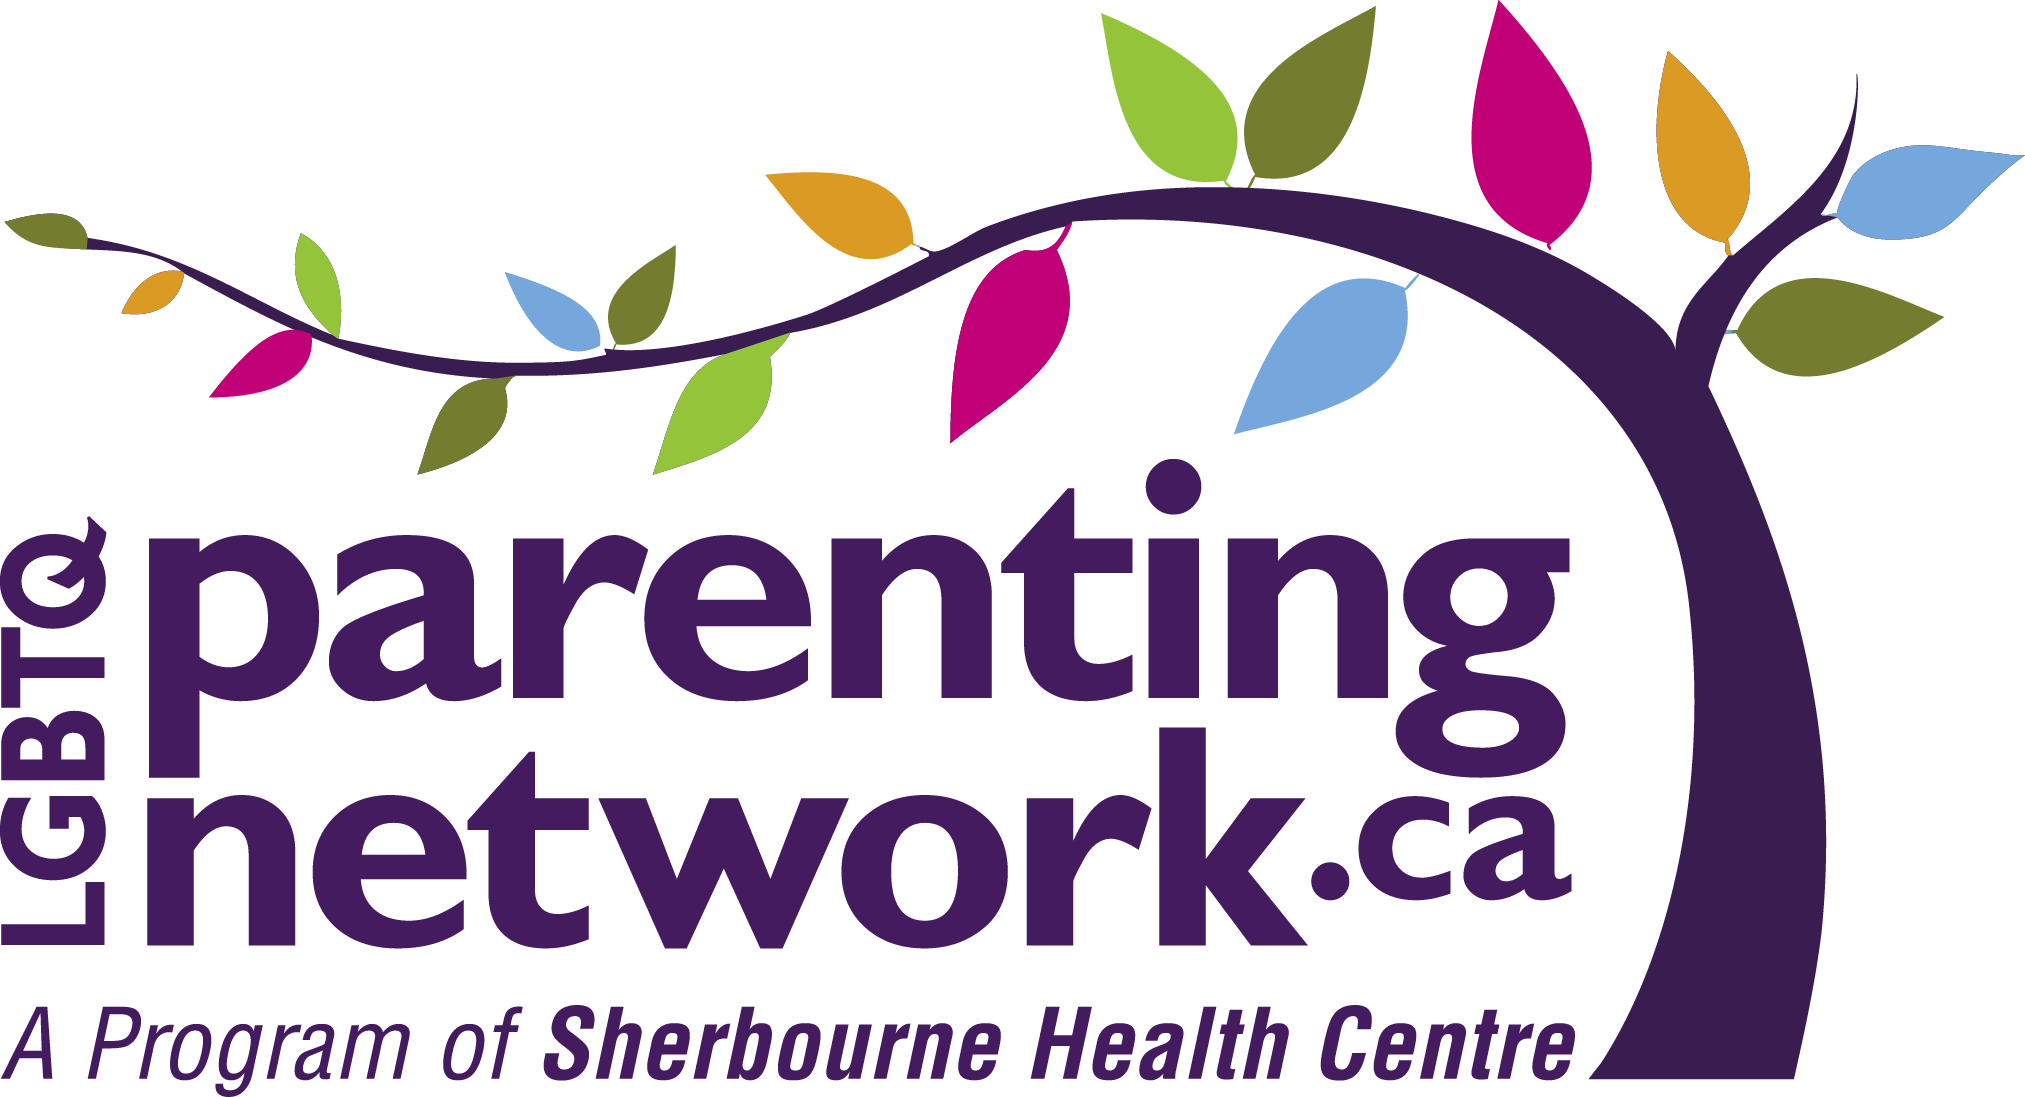 network parenting The parent helpline provides confidential phone counseling, information, resources and referrals for anyone in a parenting role concerning any issue that impacts the well-being of a child impact 2-1-1 responds after hours.